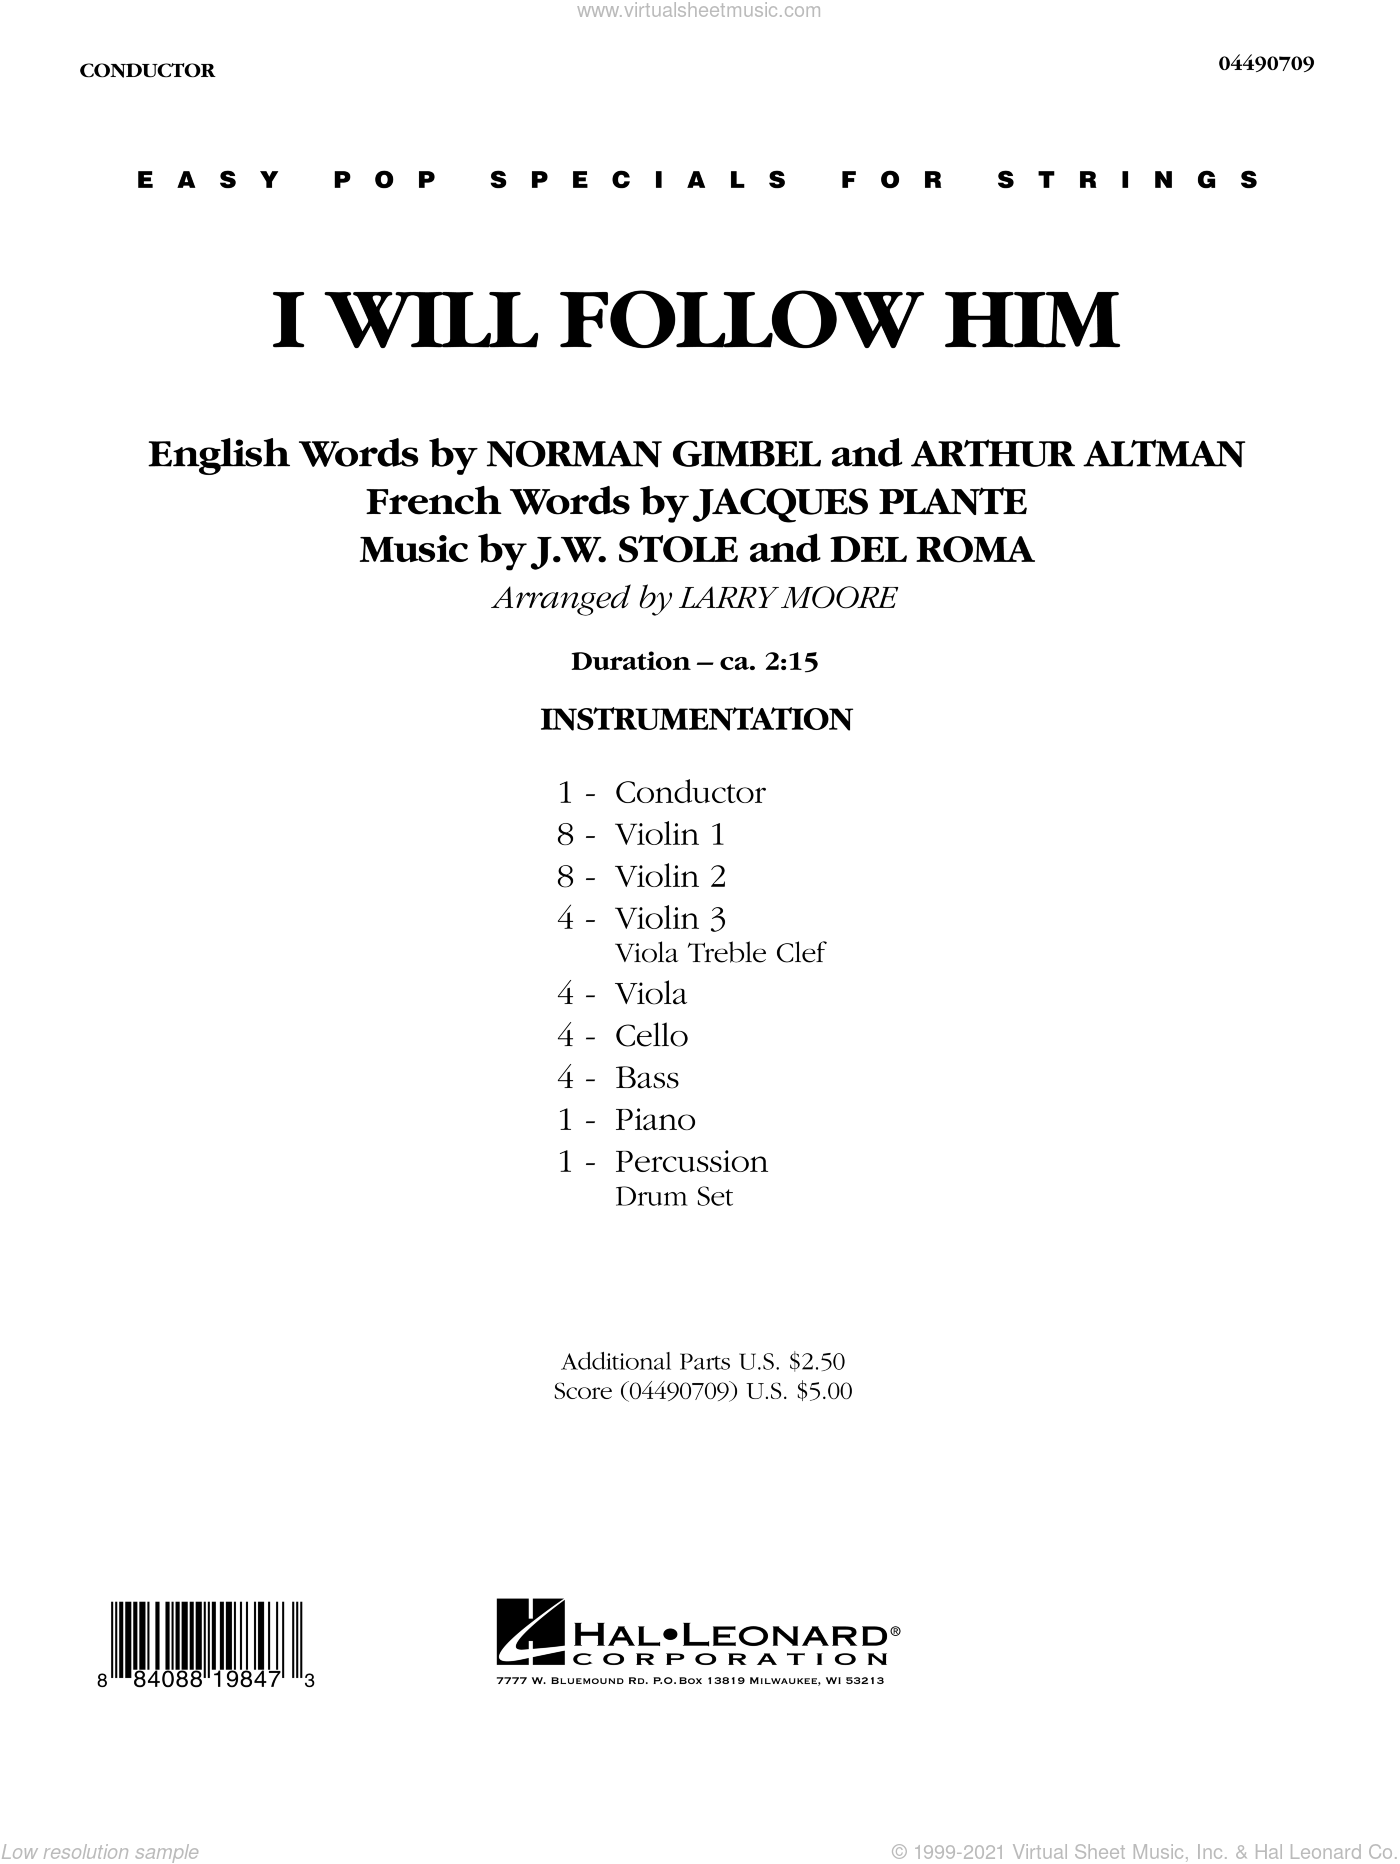 I Will Follow Him sheet music for orchestra (full score) by Del Roma